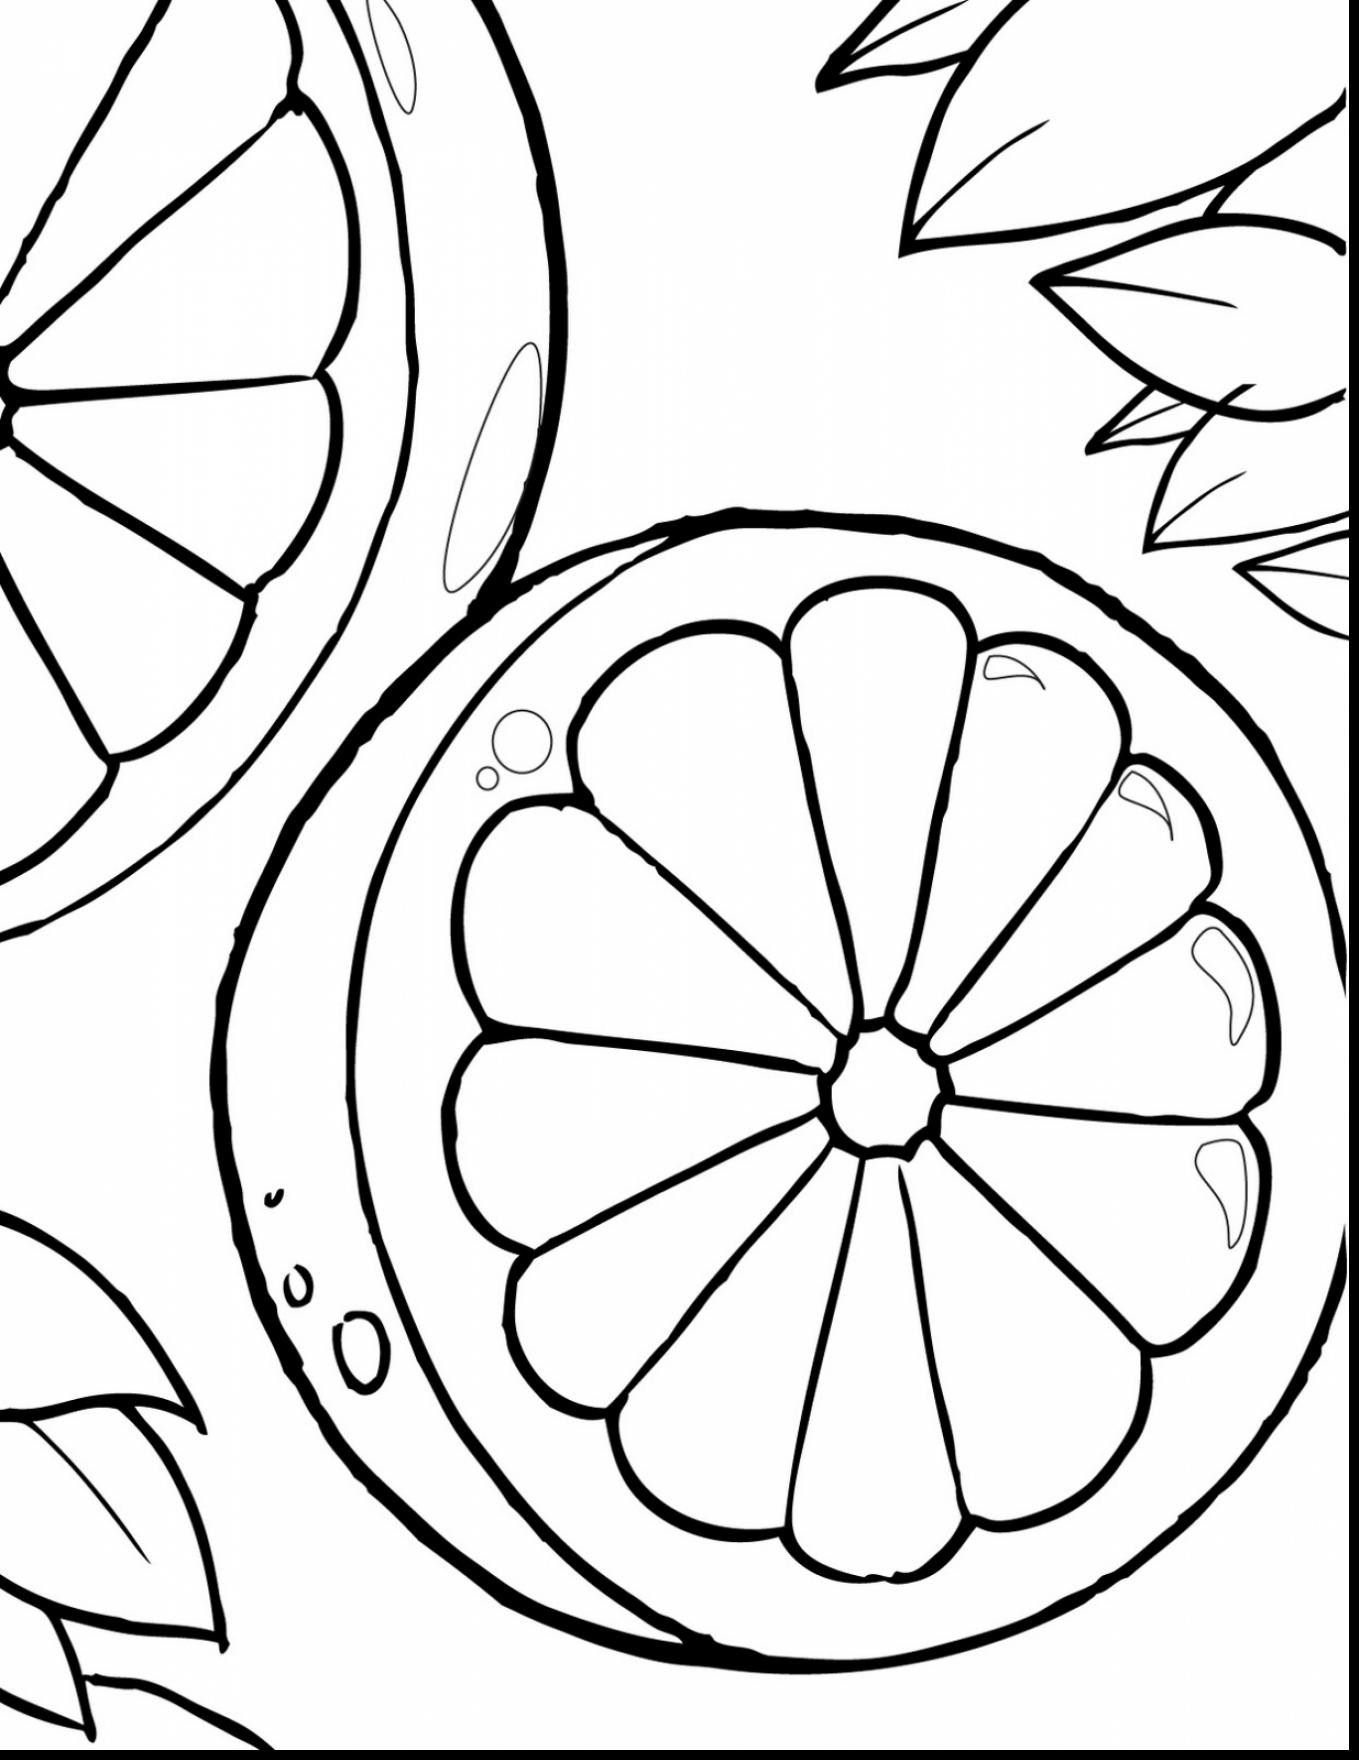 1359x1760 Convert Photo To Coloring Page Inspirational Coloring Free Convert